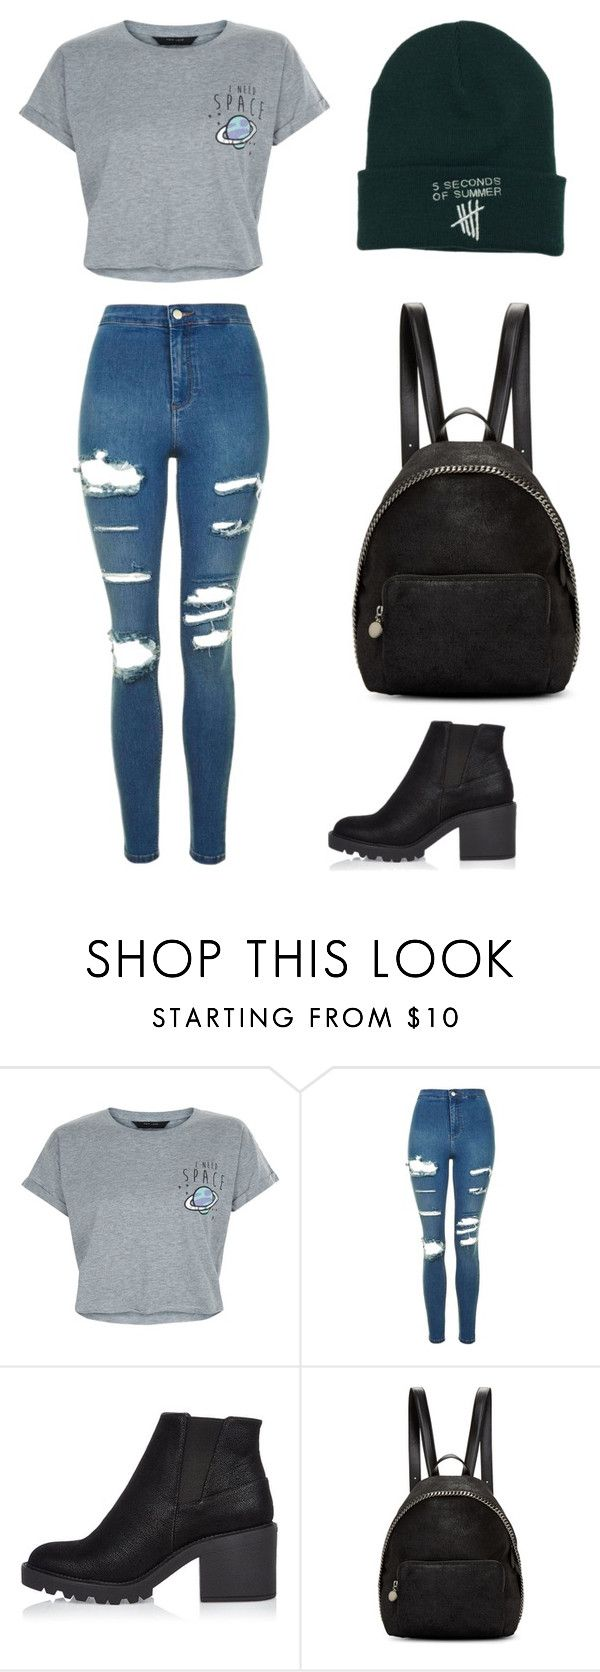 """Untitled #206"" by karenrodriguez-iv on Polyvore featuring New Look, Topshop, River Island and STELLA McCARTNEY"